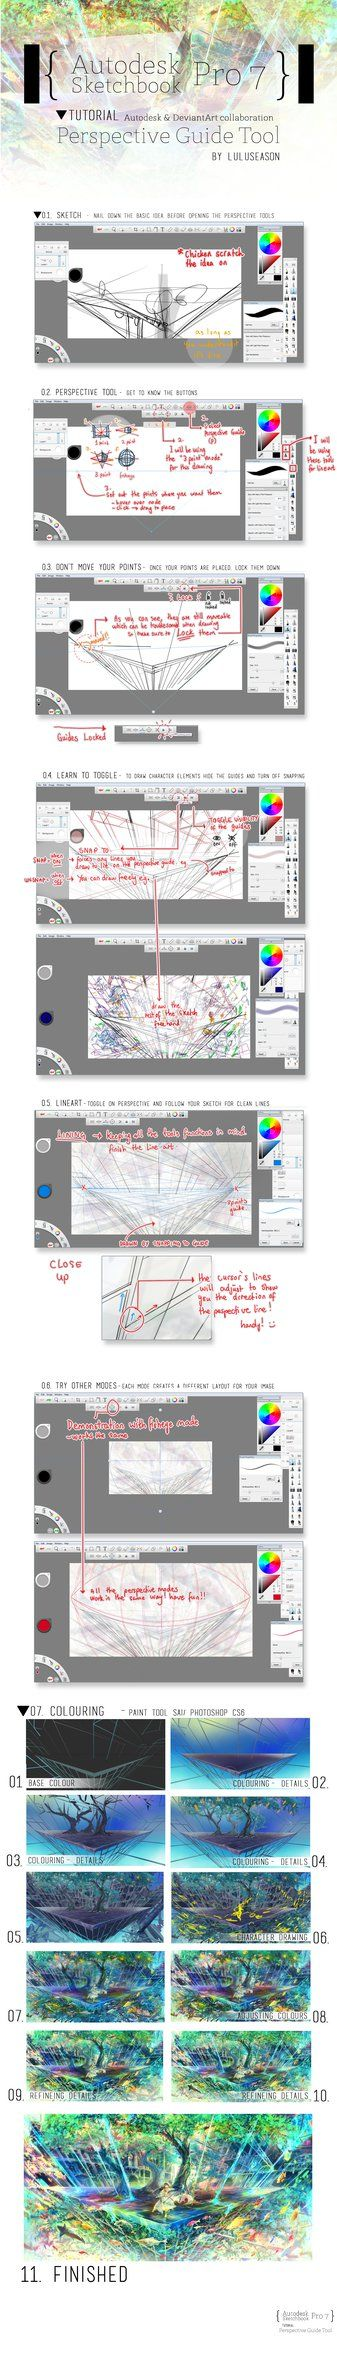 Made in collaboration with the Autodesk & DeviantArt tutorial project. This is the tutorial to explain the basics on how to use the Perspective Guide Tool on Autodesk Sketchbook Pro 7.0. It's s...